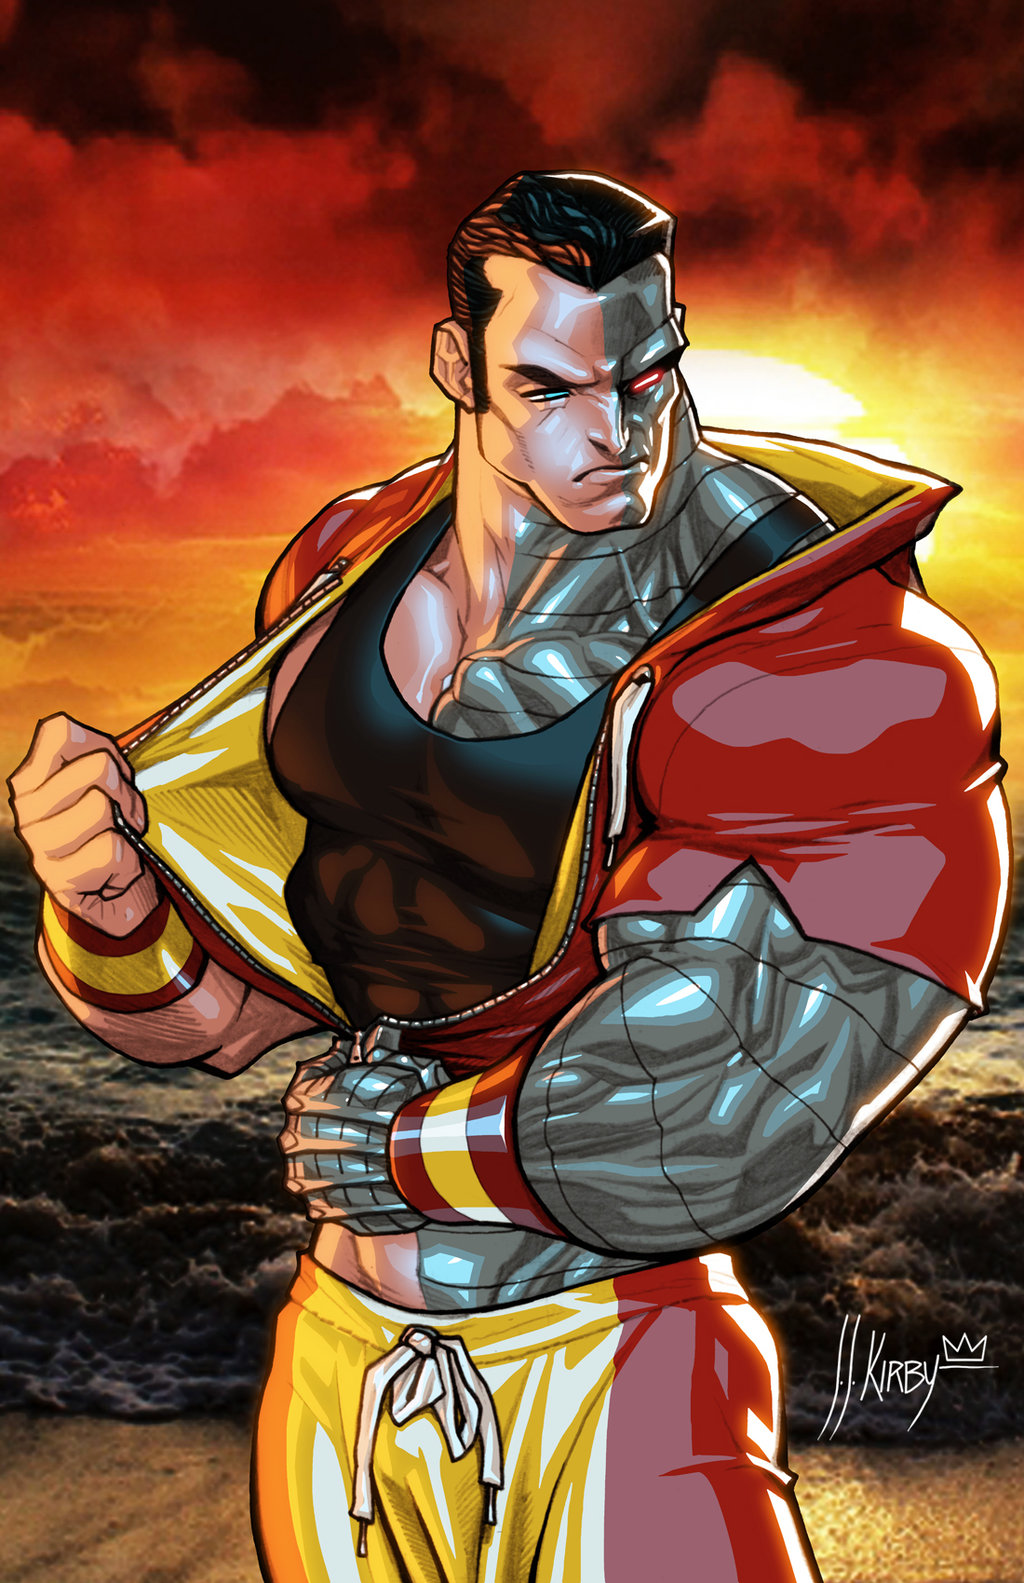 Colossus-by-JJ-Kirby-XMen-Mutants-wallpaper-wp5404211